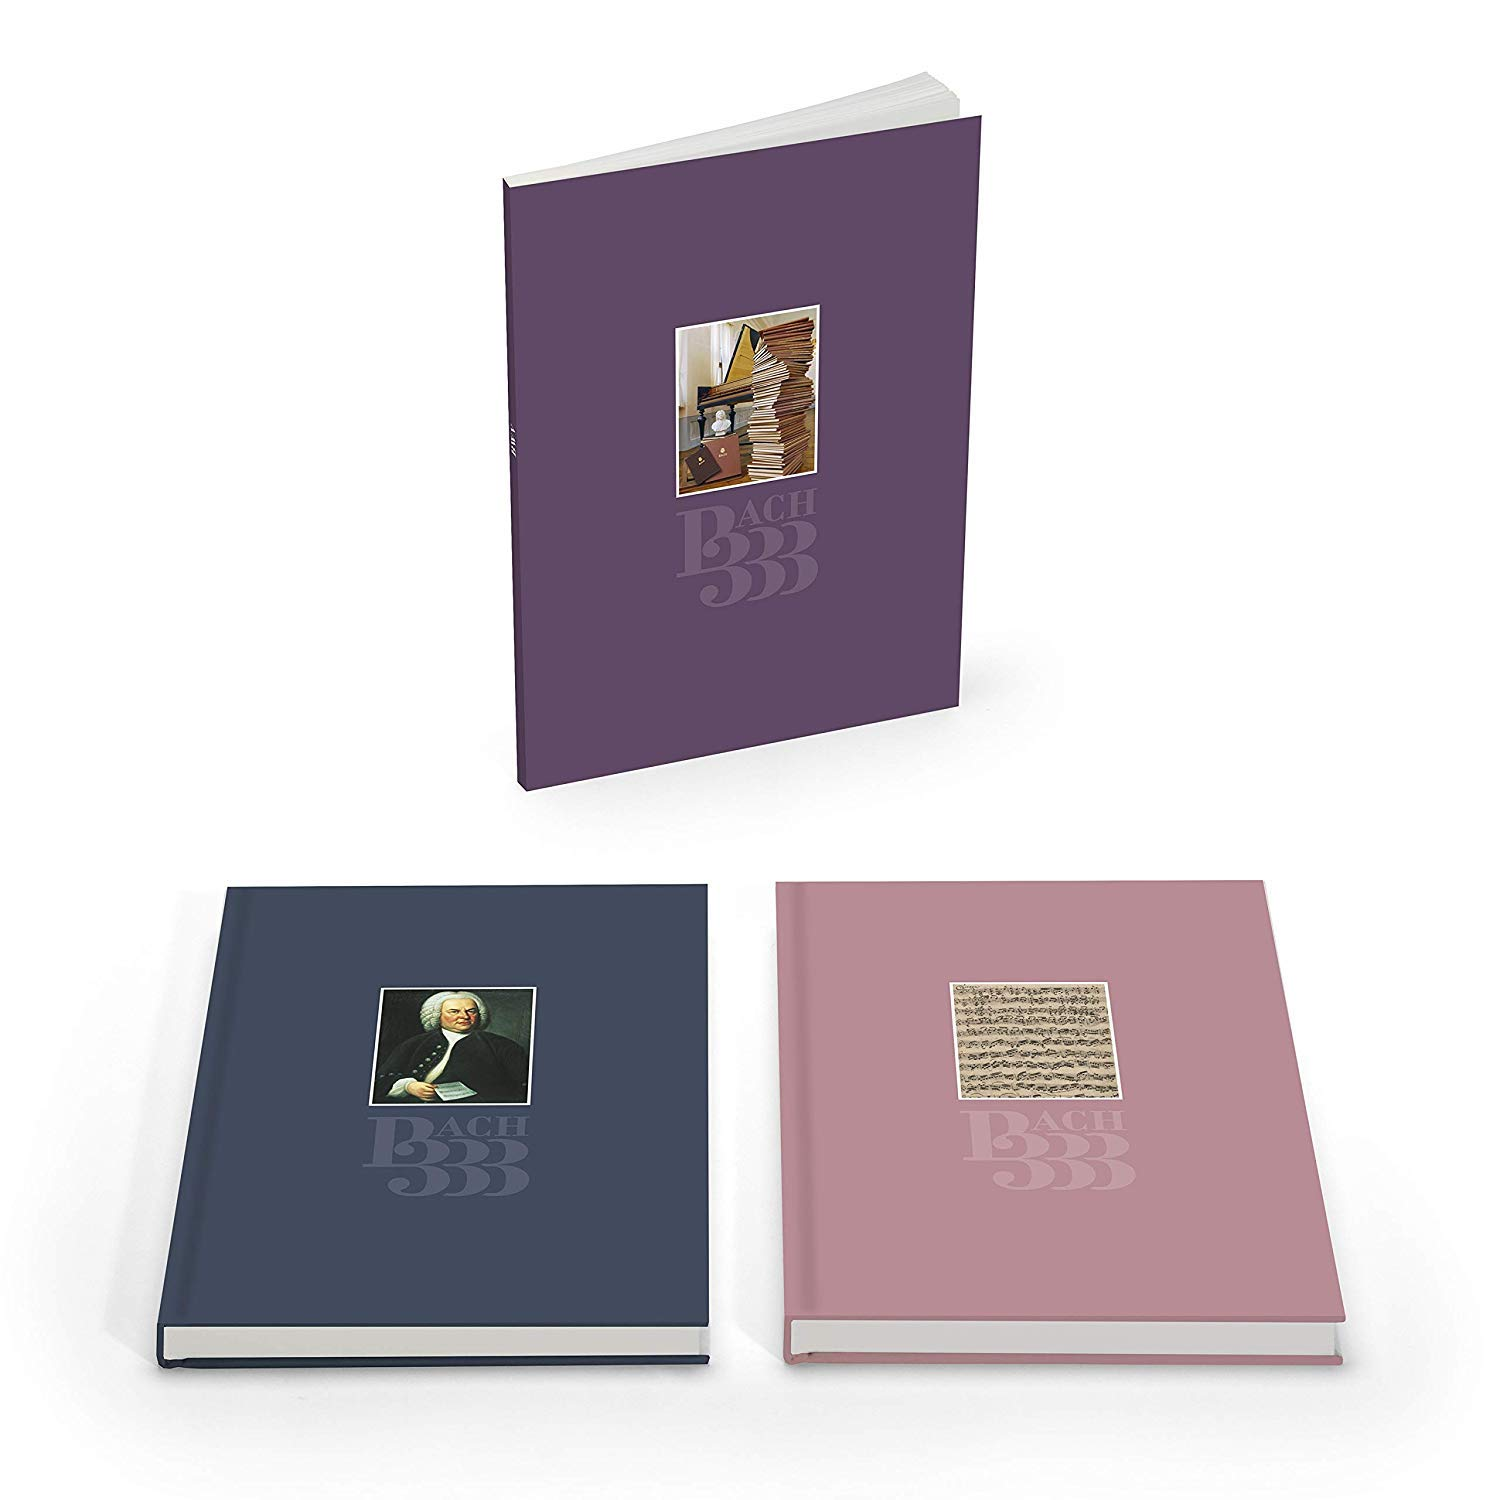 Bach333: The new complete edition : Multi-Artistes, Bach333: Amazon ...